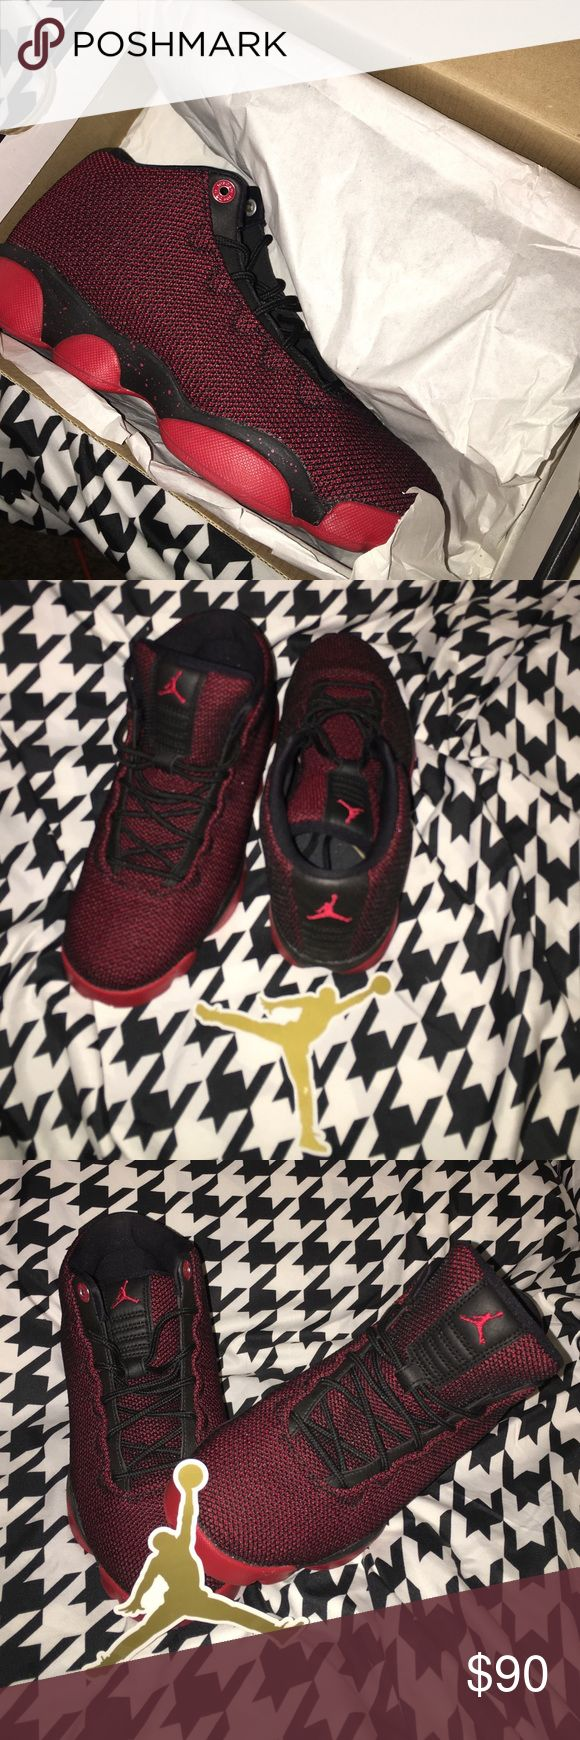 Black/Gym Red-White Jordan Horizon Low BG Jordan Horizon LOW BG Jordan Shoes Sneakers